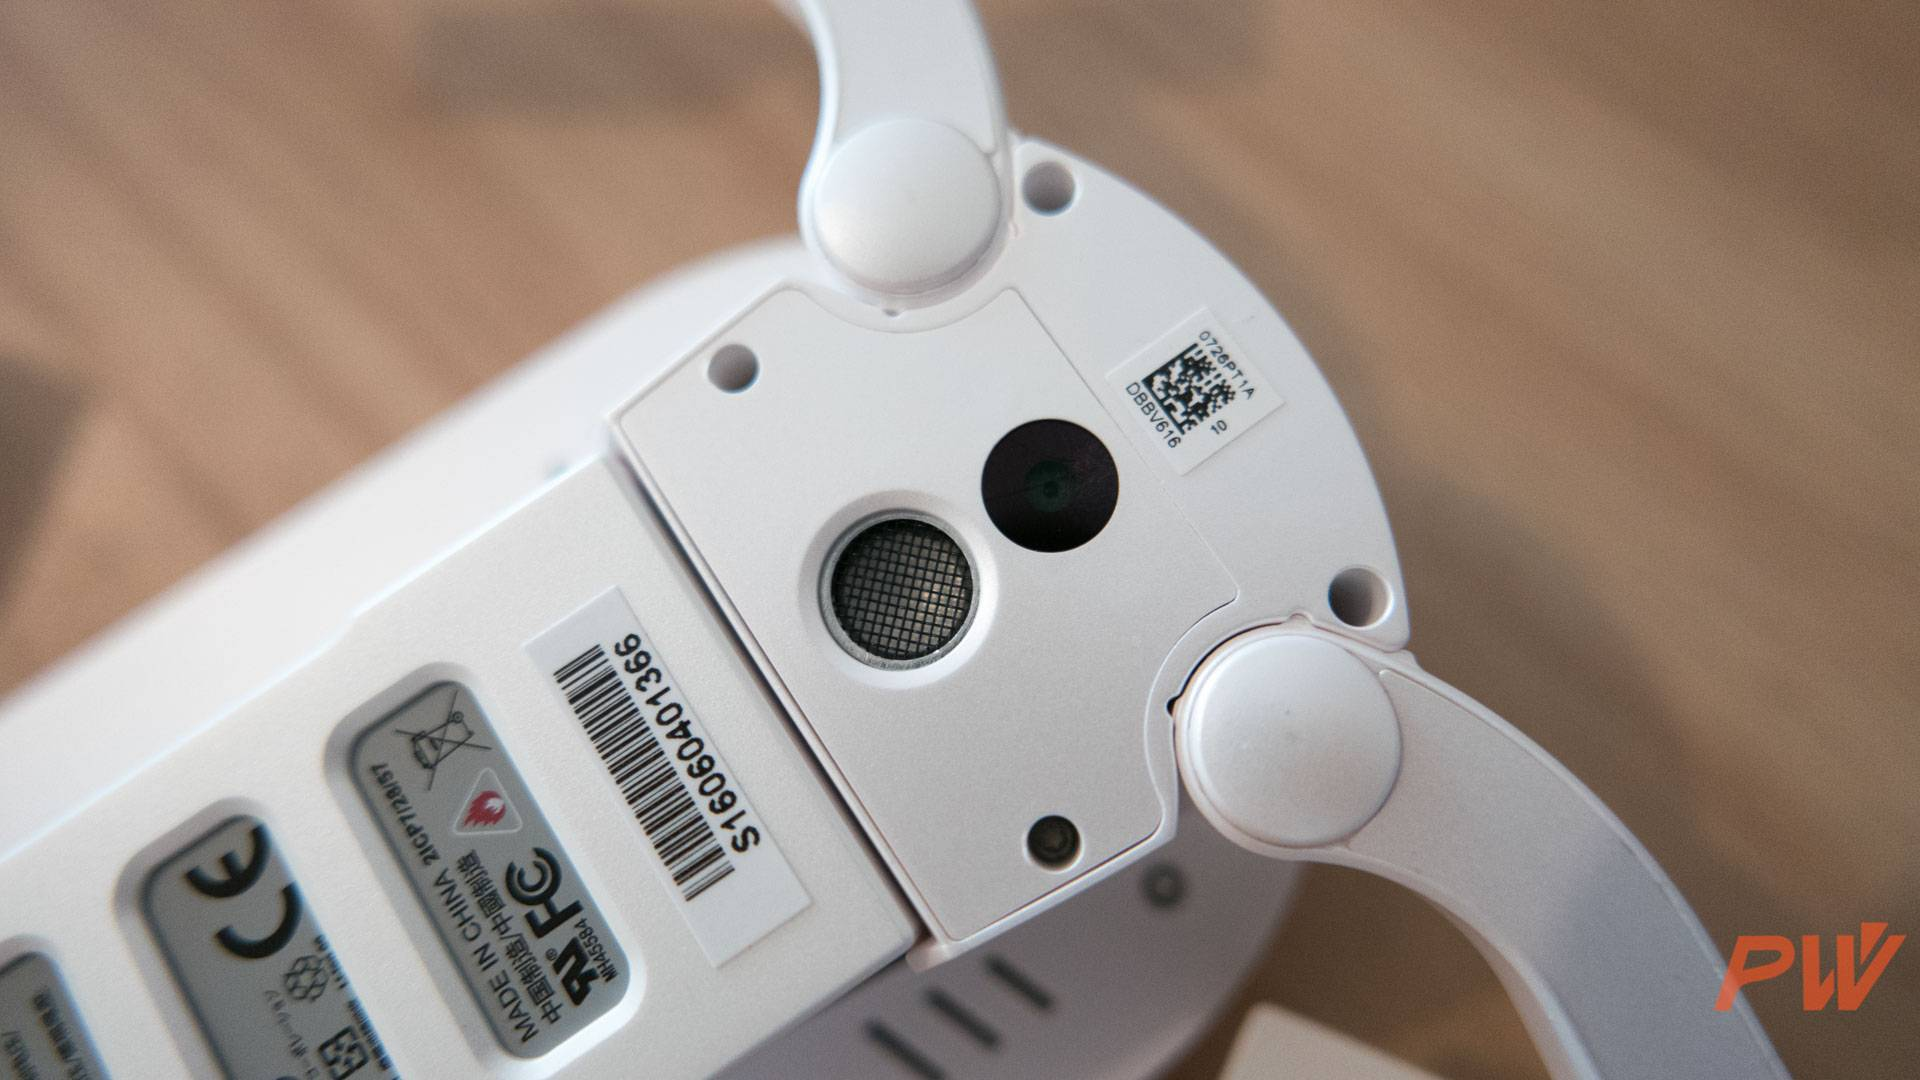 Zero Tech DJI Dobby Consumer edition PingWest Photo By Hao Ying-7